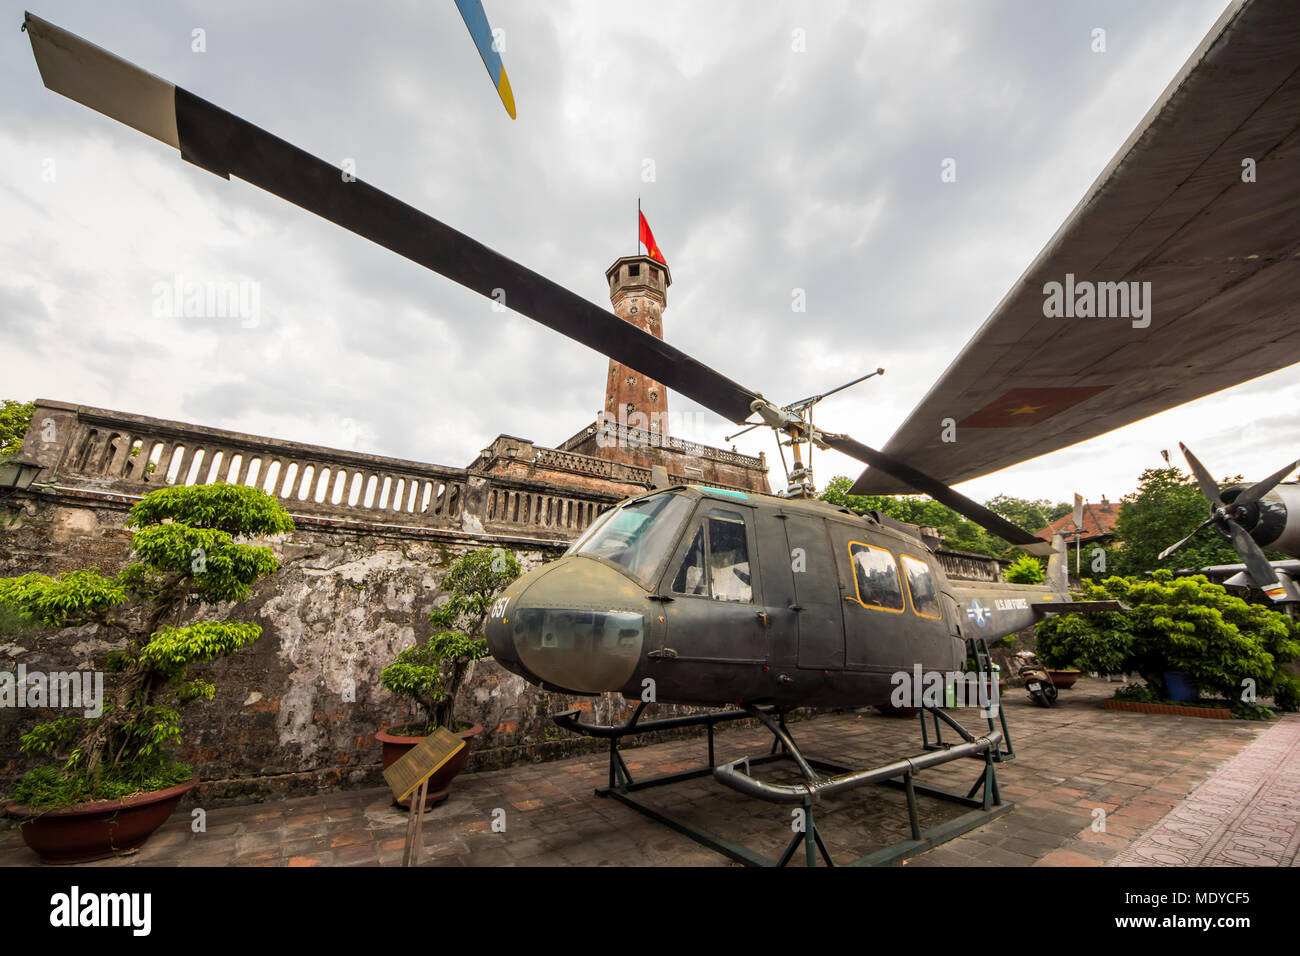 Bell UH-1 Iroquois (nicknamed Huey) utility military helicopter on display at the Vietnam Military History Museum; Hanoi, Vietnam - Stock Image